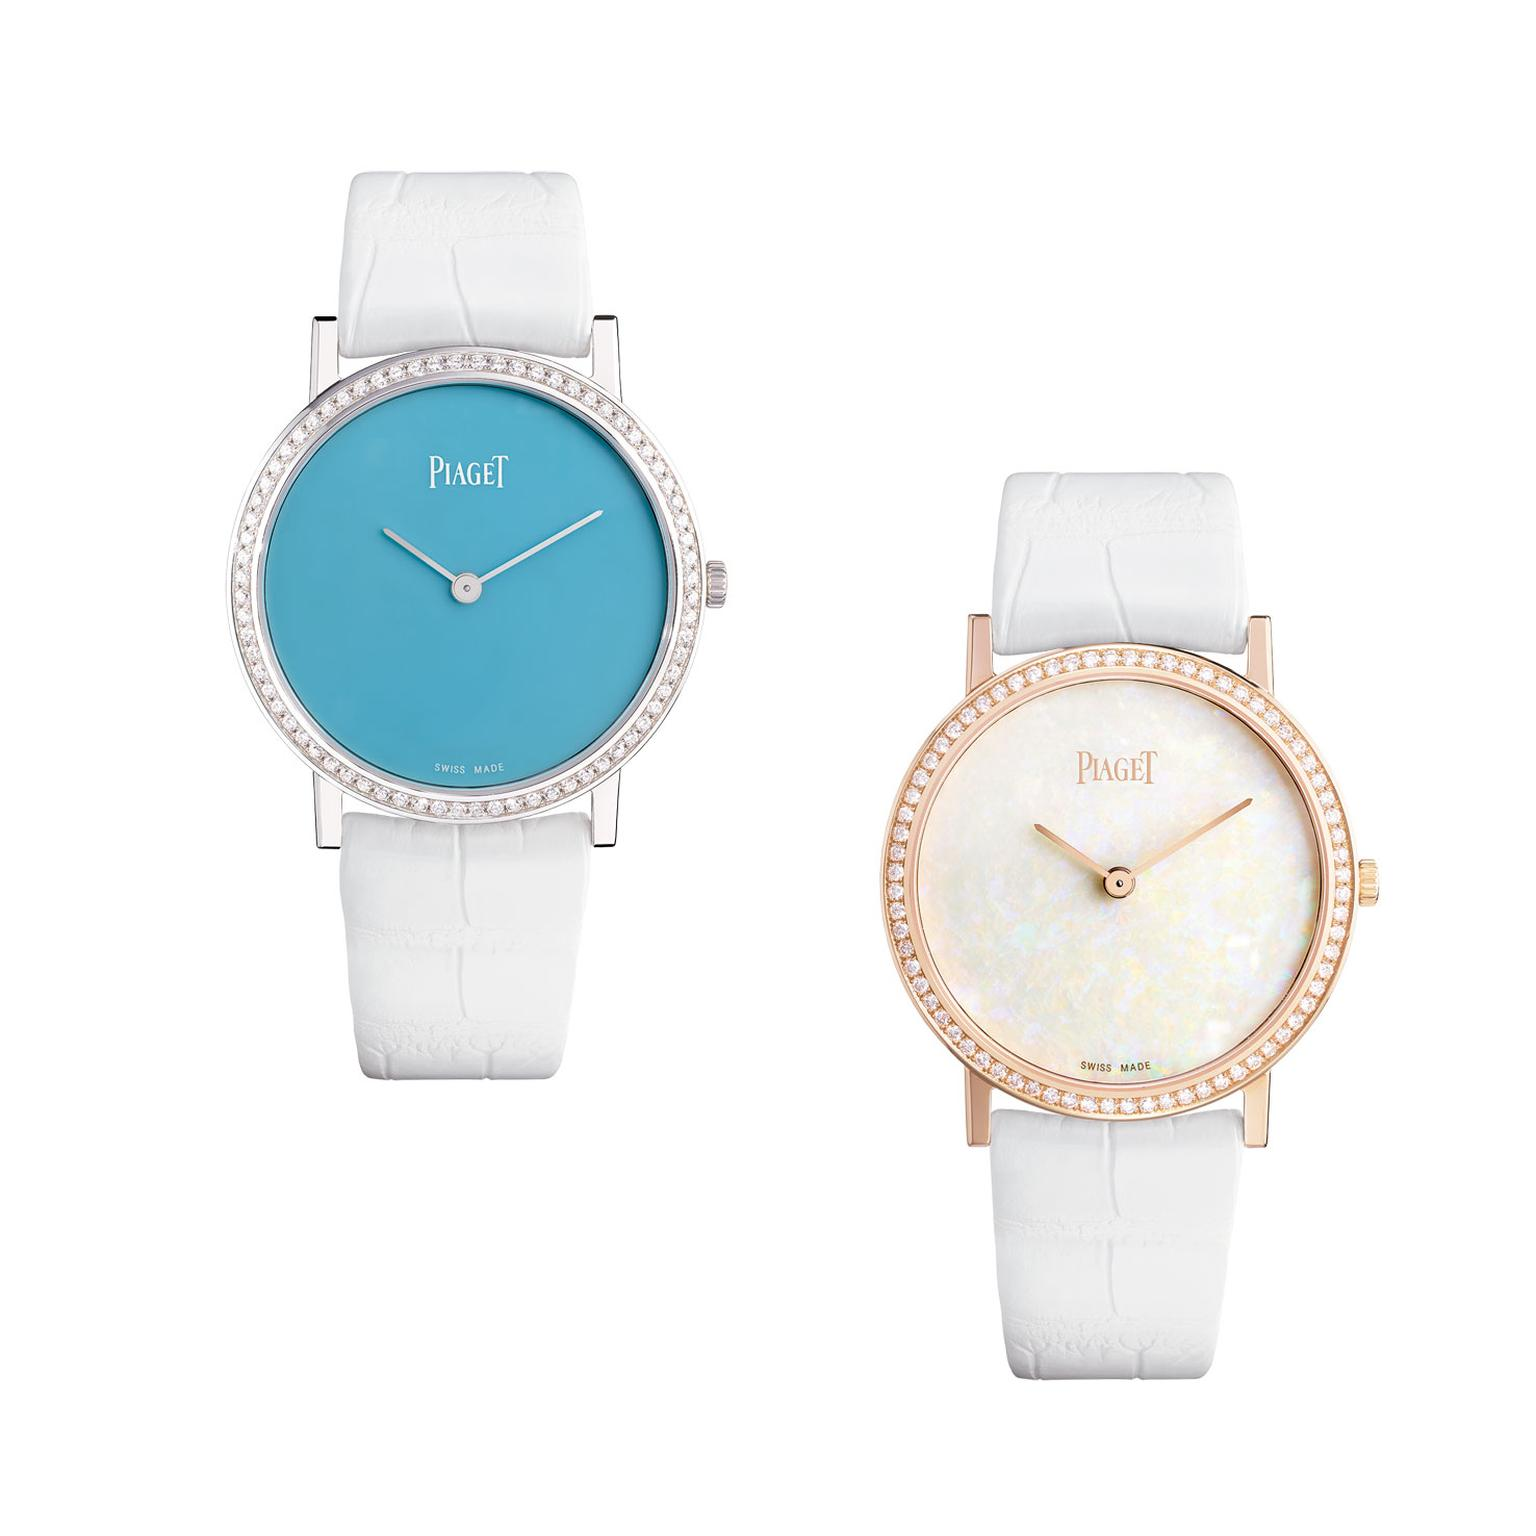 Piaget Altiplano watches with turquoise and white opal dials